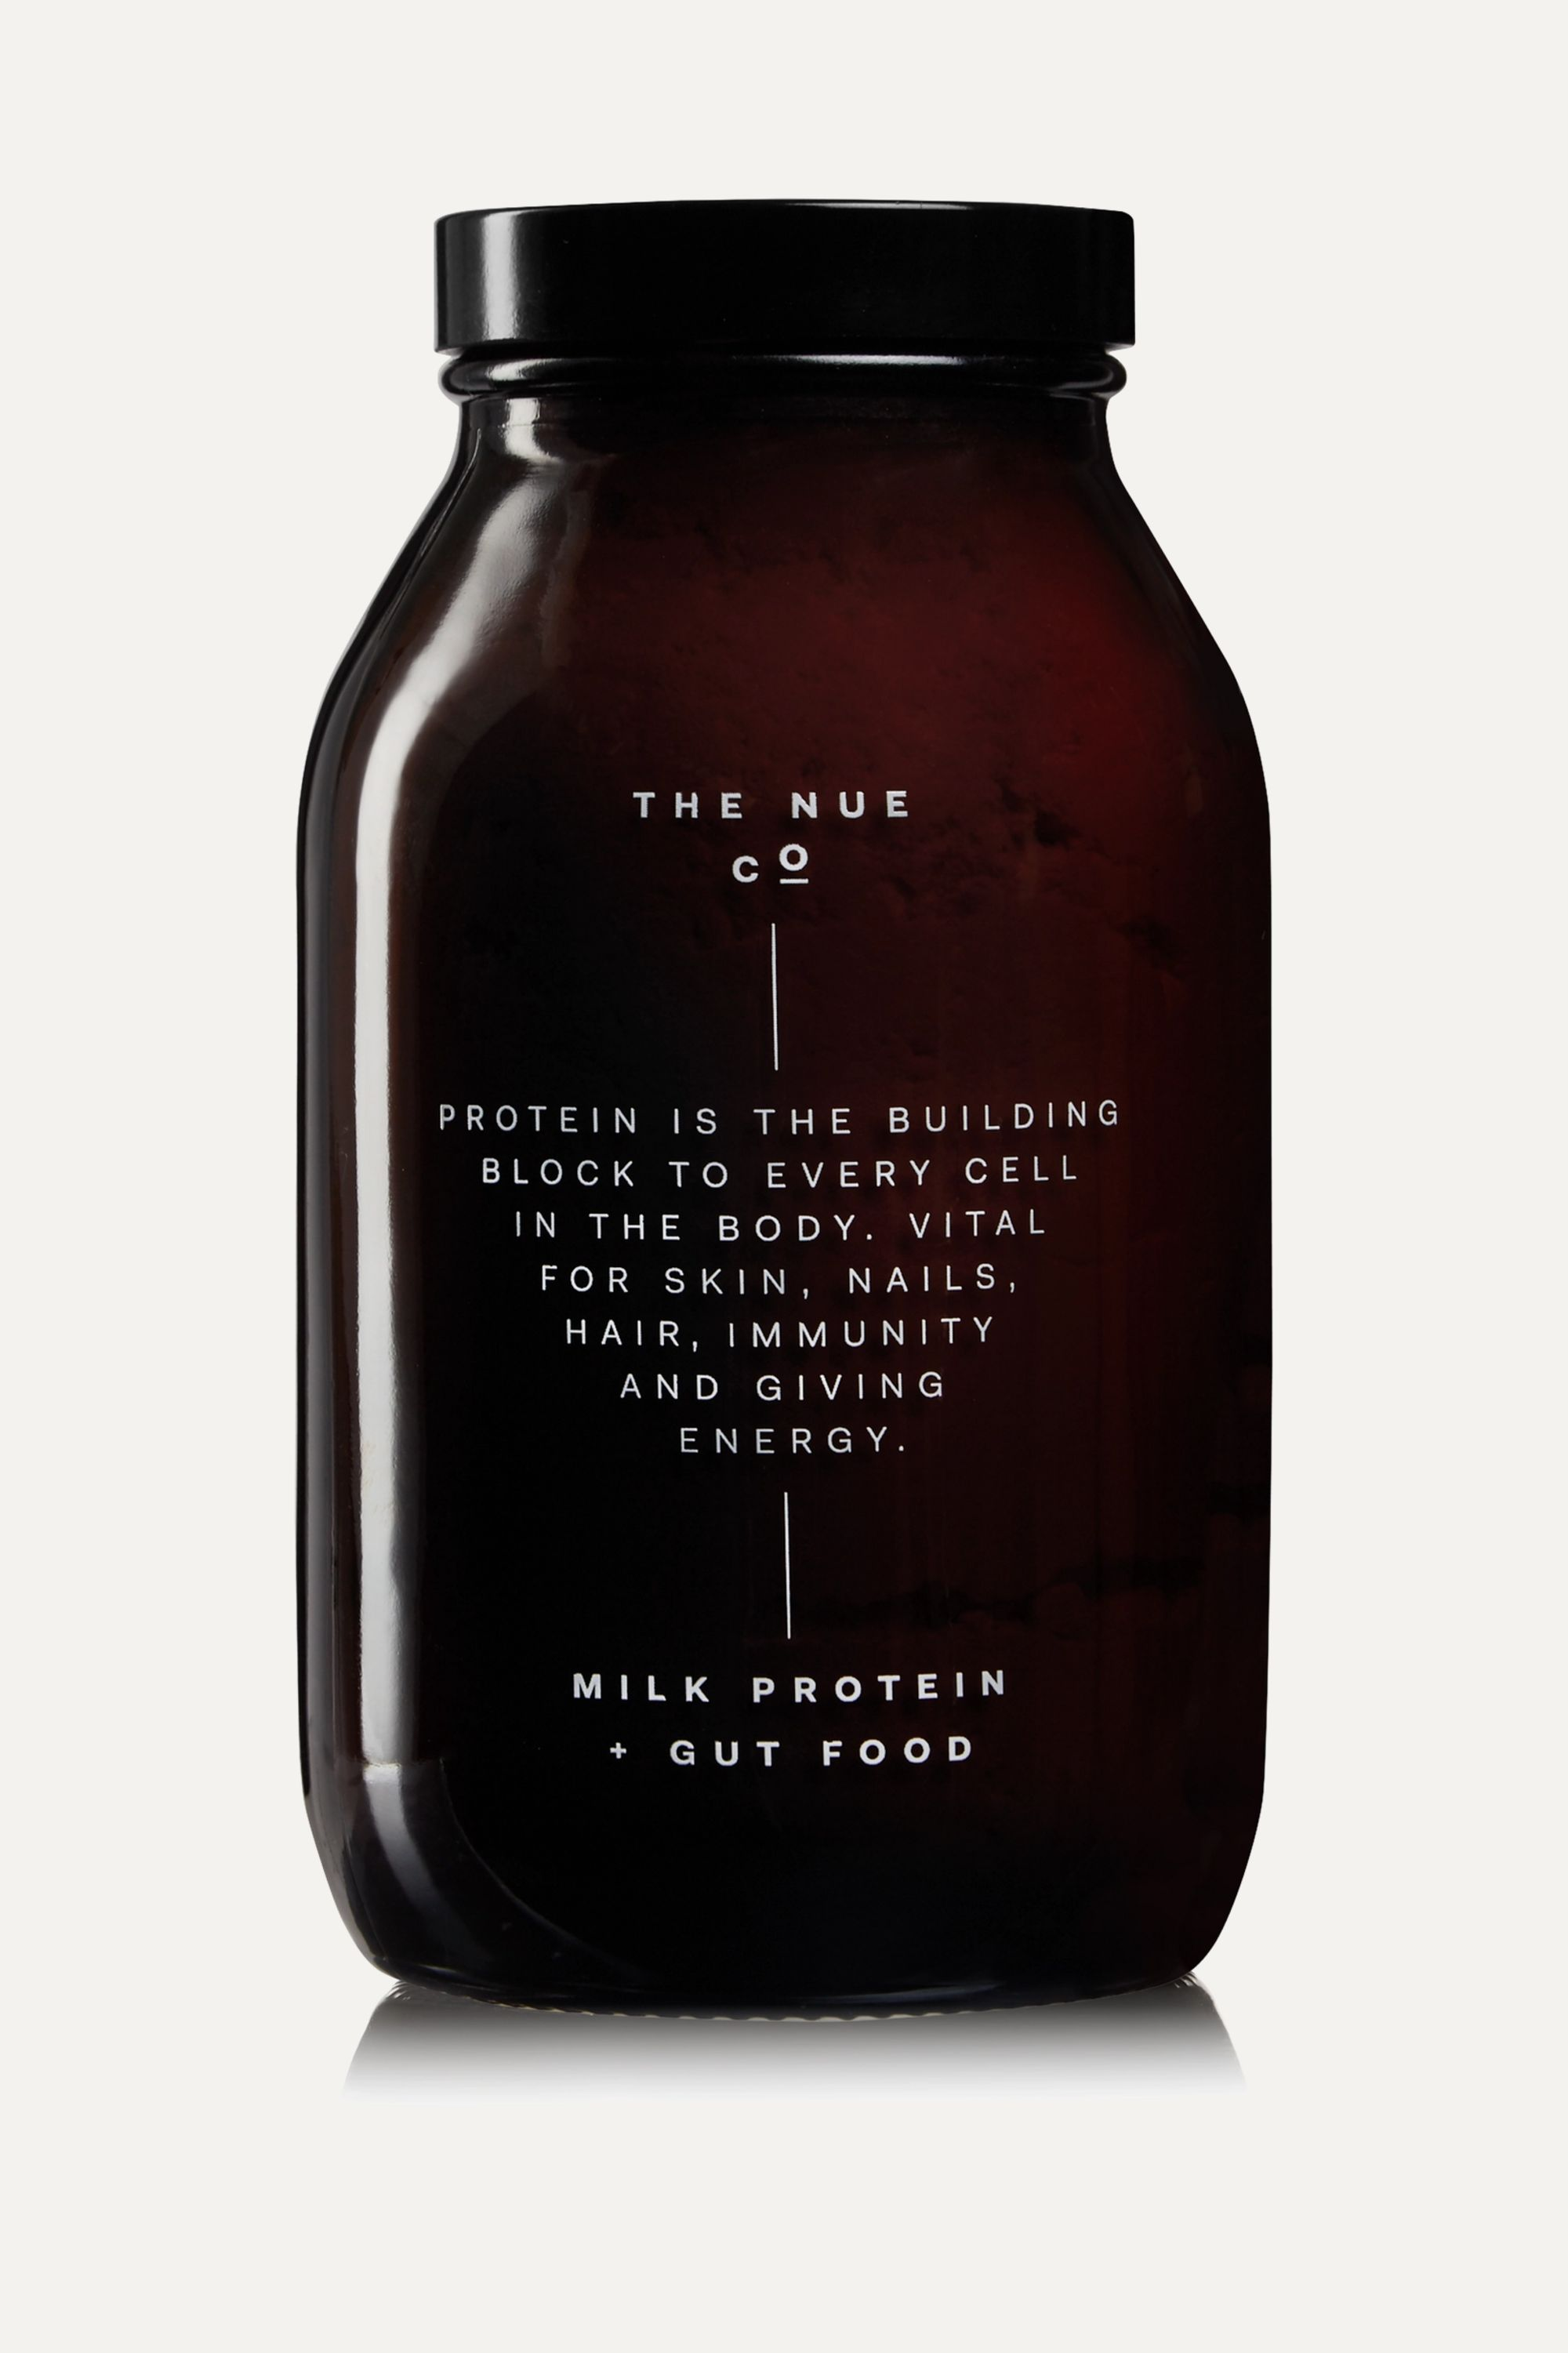 The Nue Co. Milk Protein + Gut Food, 200g